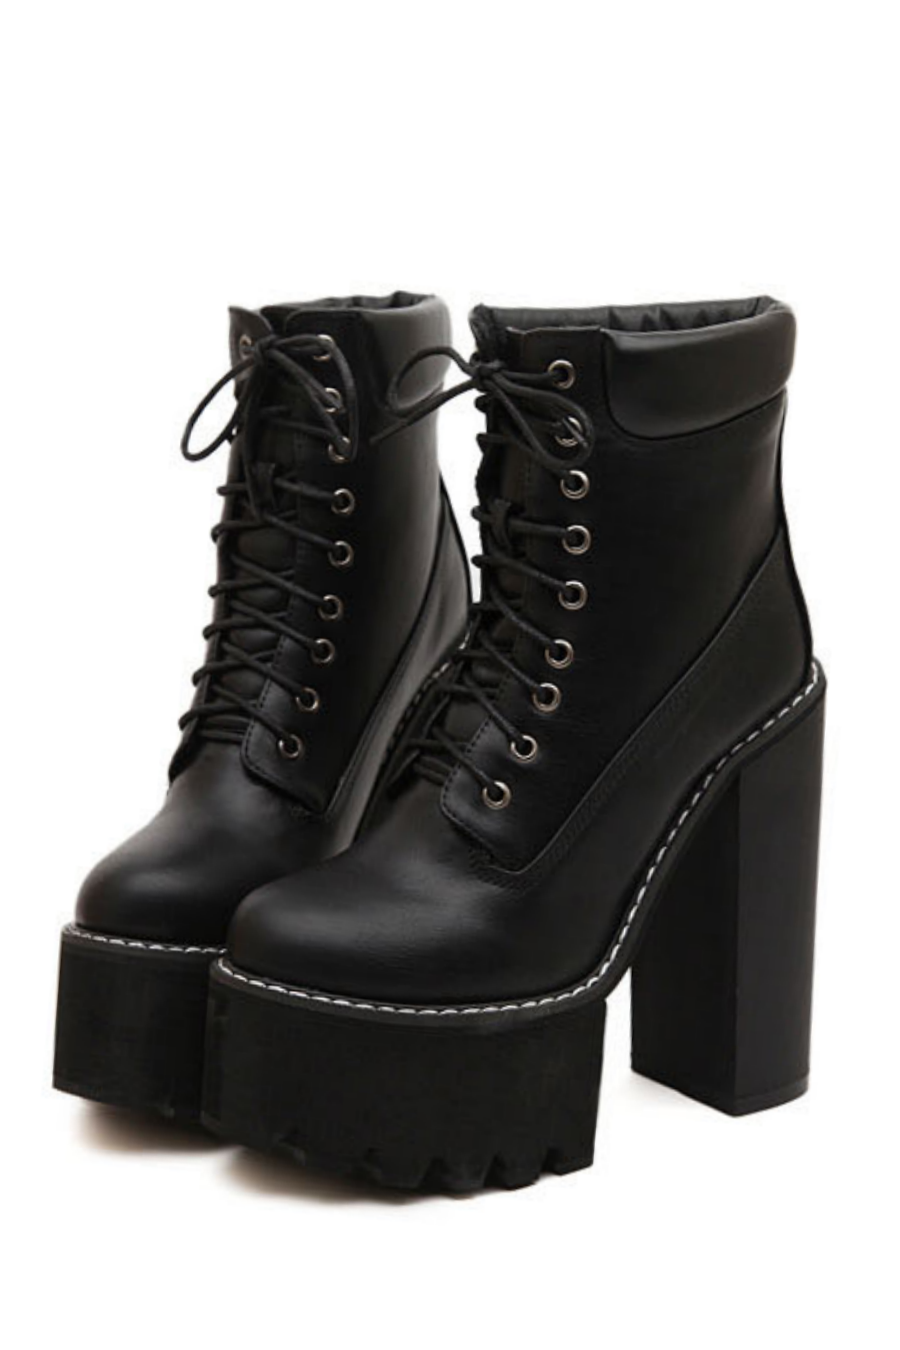 Punk Lace Up High Heel Boots. Tap to expand bf8632947